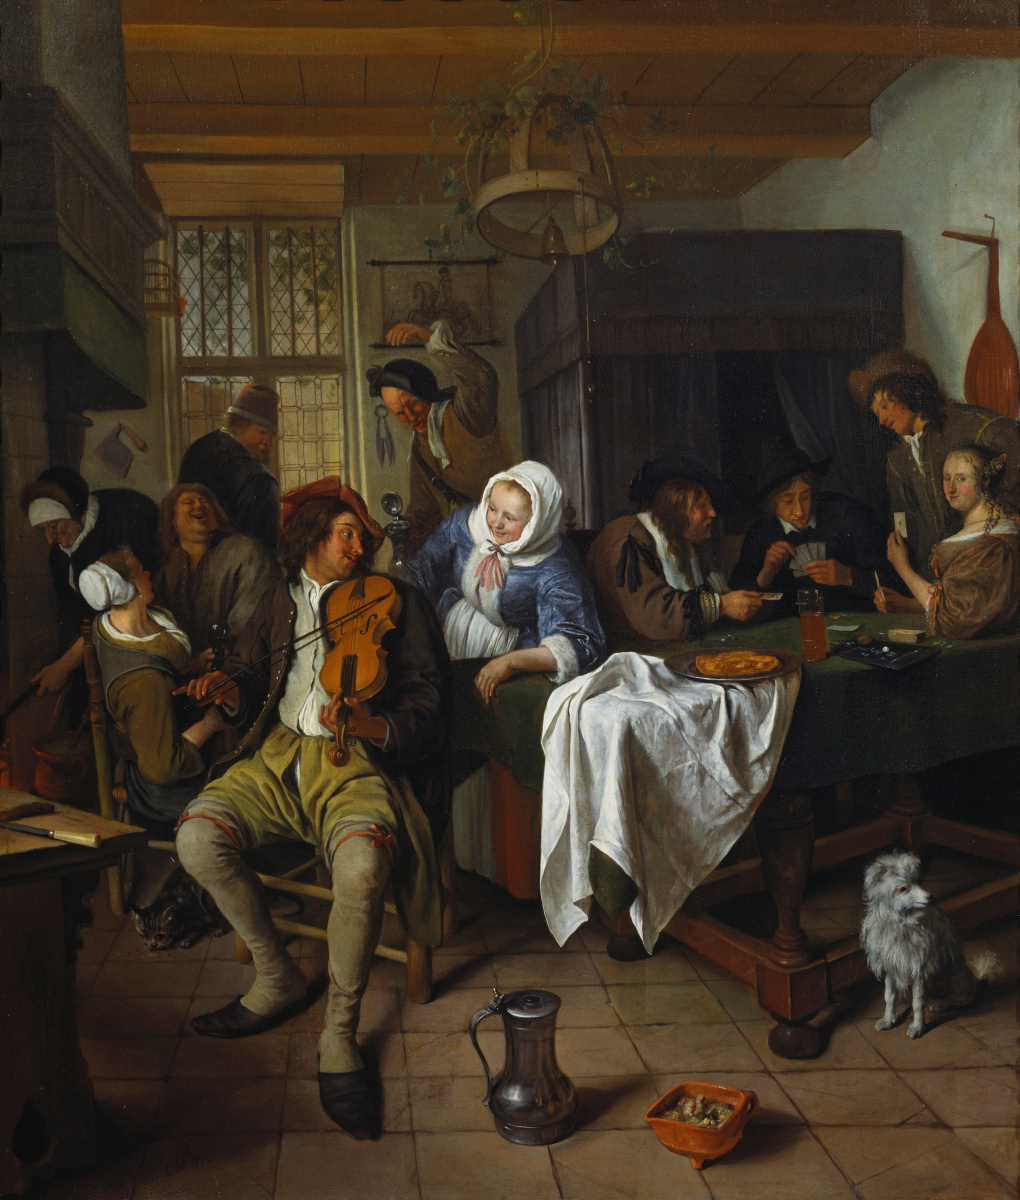 Jan Steen. Interior of a tavern with card players and a violinist